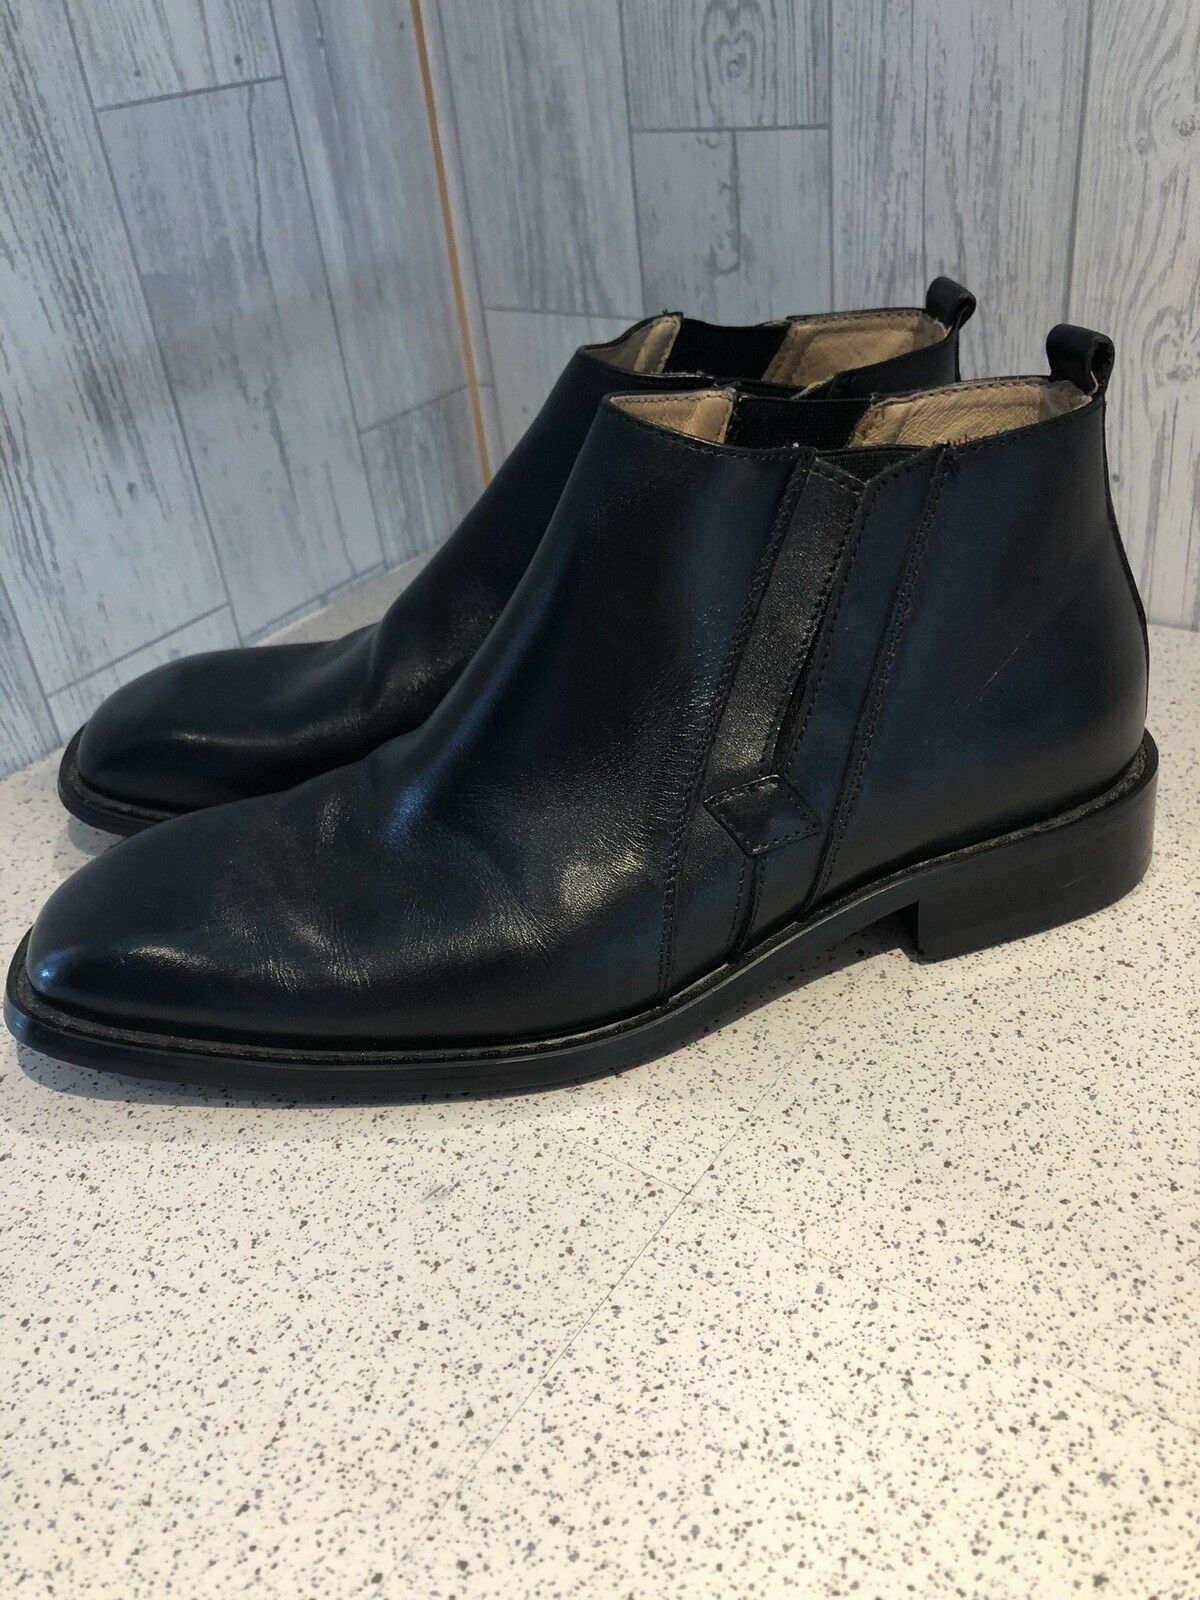 Carlo Pradi Mens Black Leather Ankle Boots Sz7.5